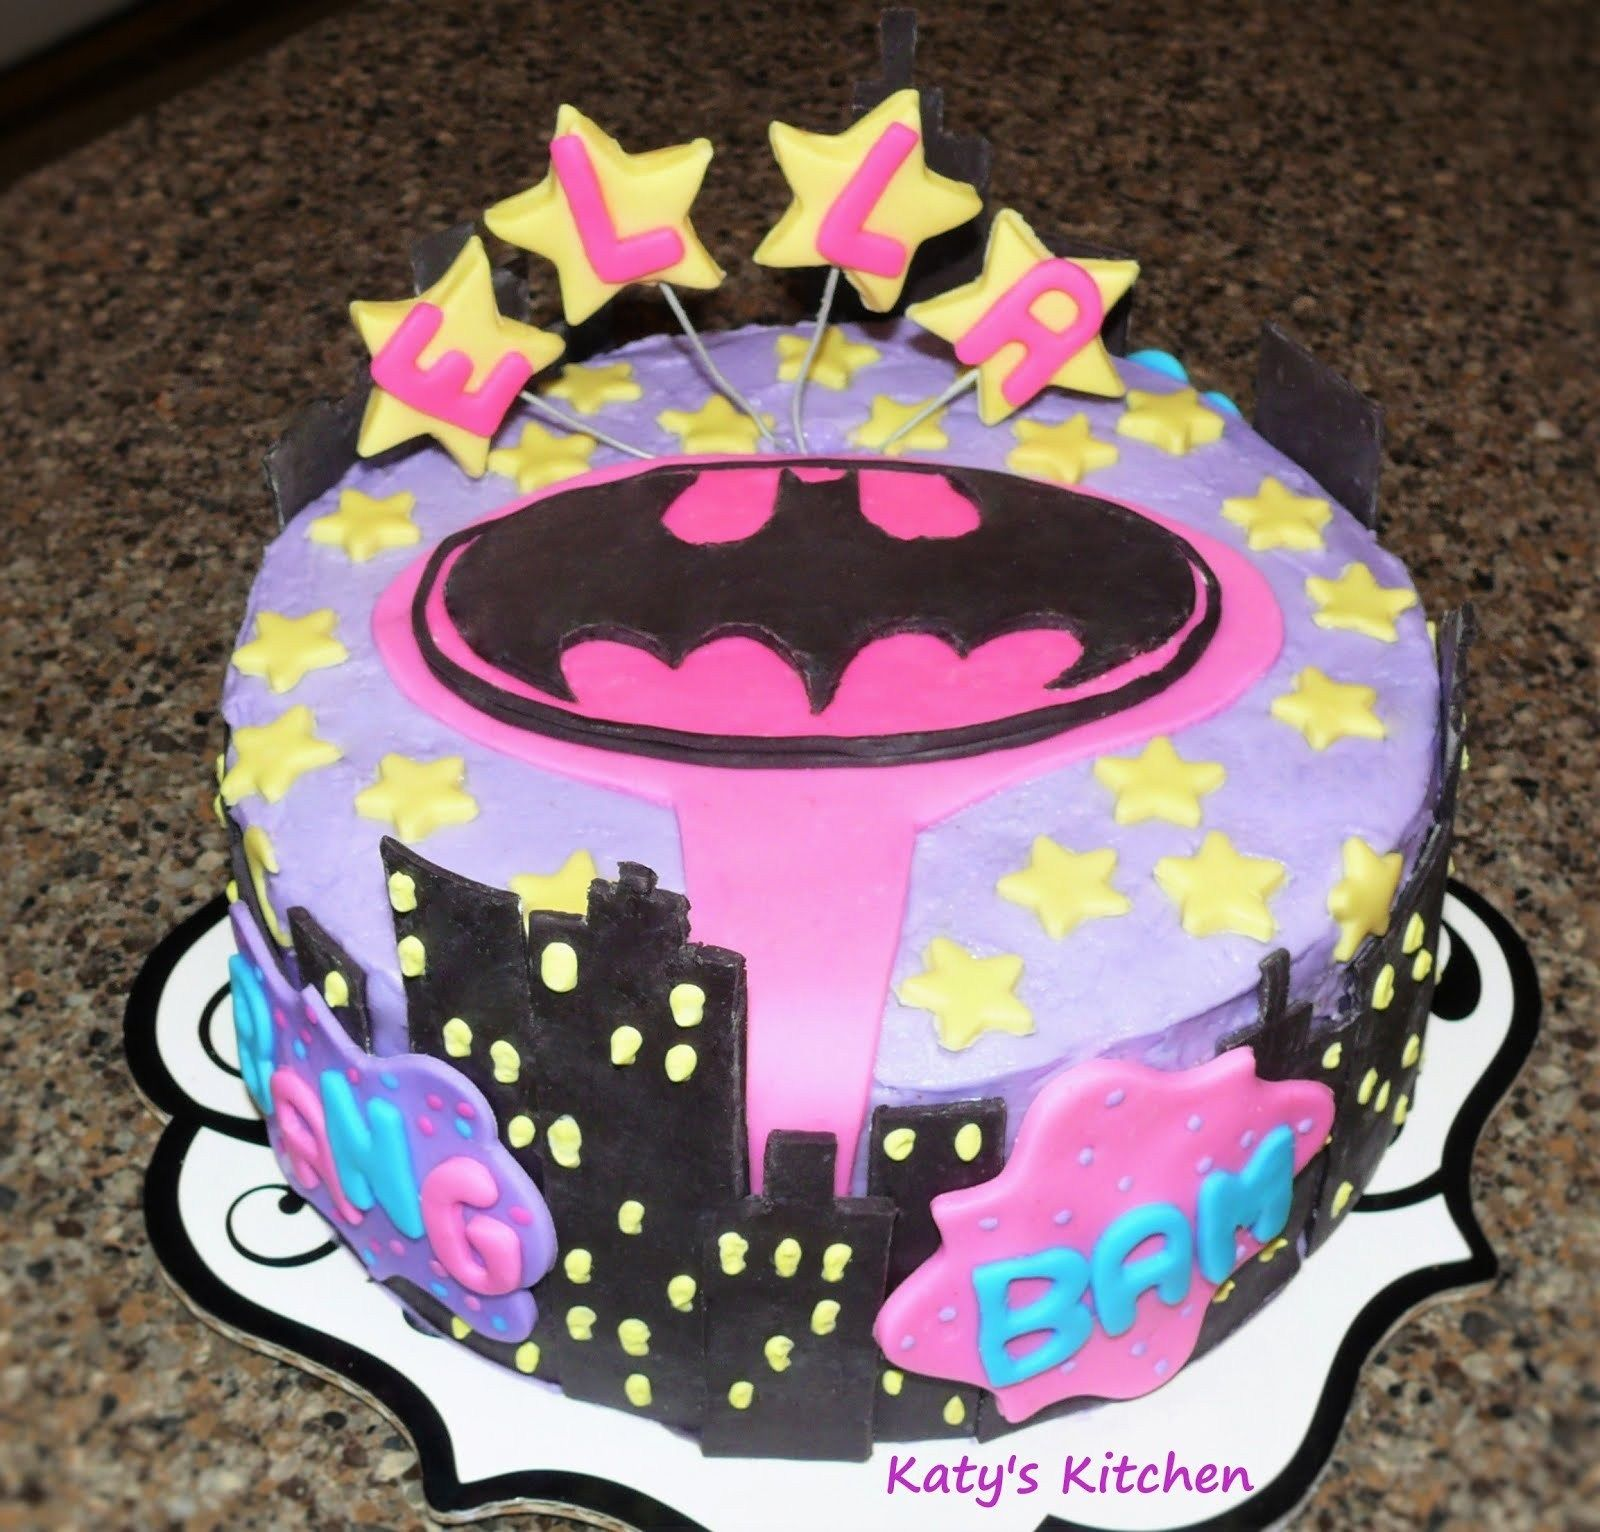 25 Excellent Image Of Batgirl Birthday Cake With Images